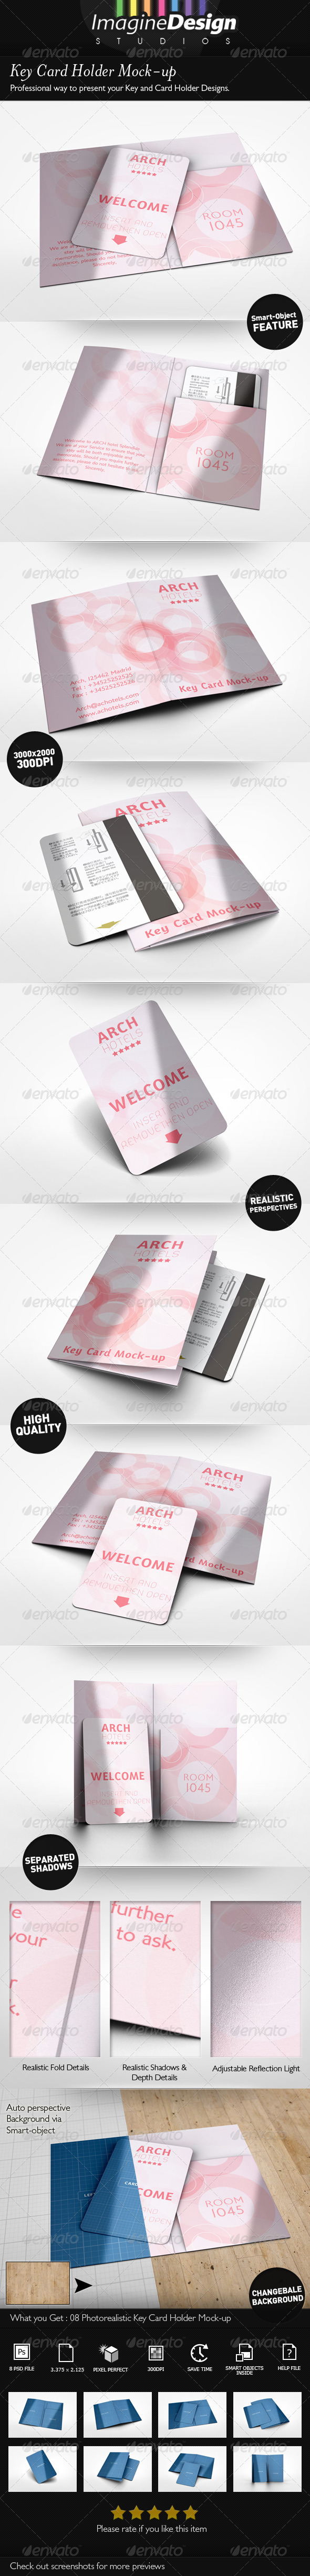 GraphicRiver Key Card Holder Mock-up 7793214